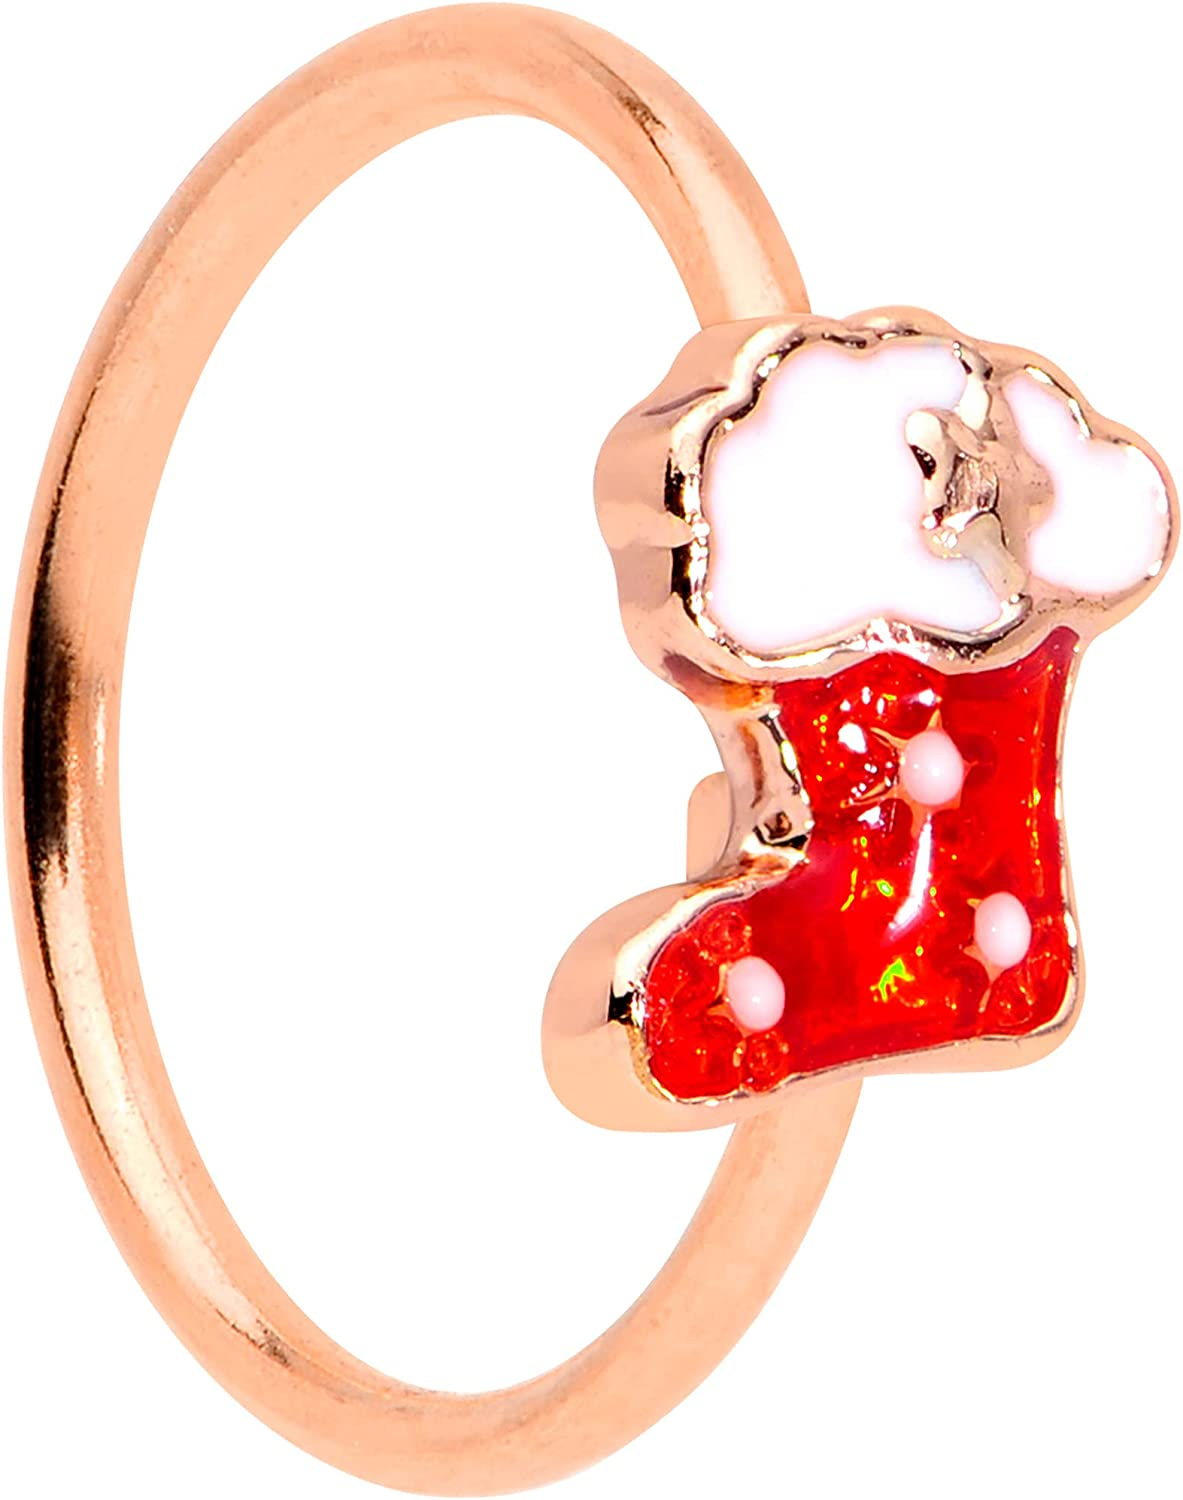 Body Candy Womens 20G PVD 316L Spasm price Nose Stocking Red Rosy Steel Ring Al sold out.